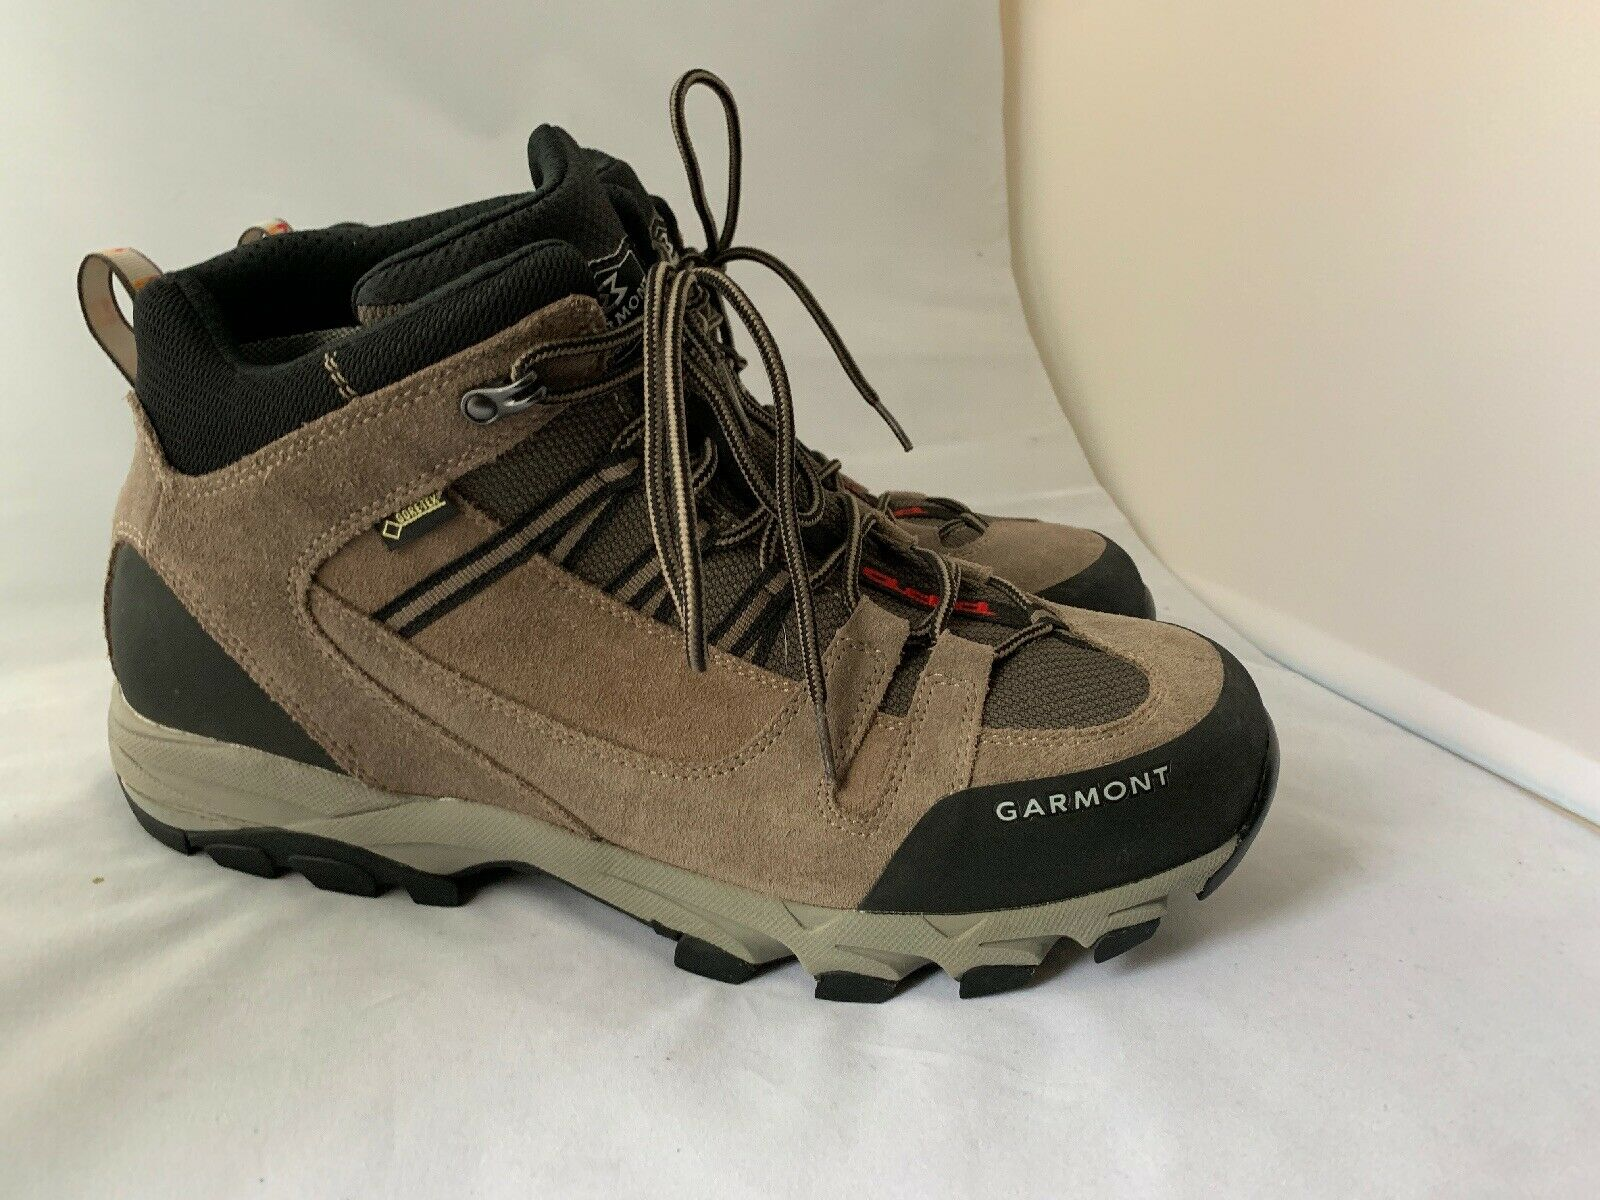 Garmont Prophet Gore-Tex Mid Hiking shoes, Caribou Taupe, 13.5 Men's Waterproof